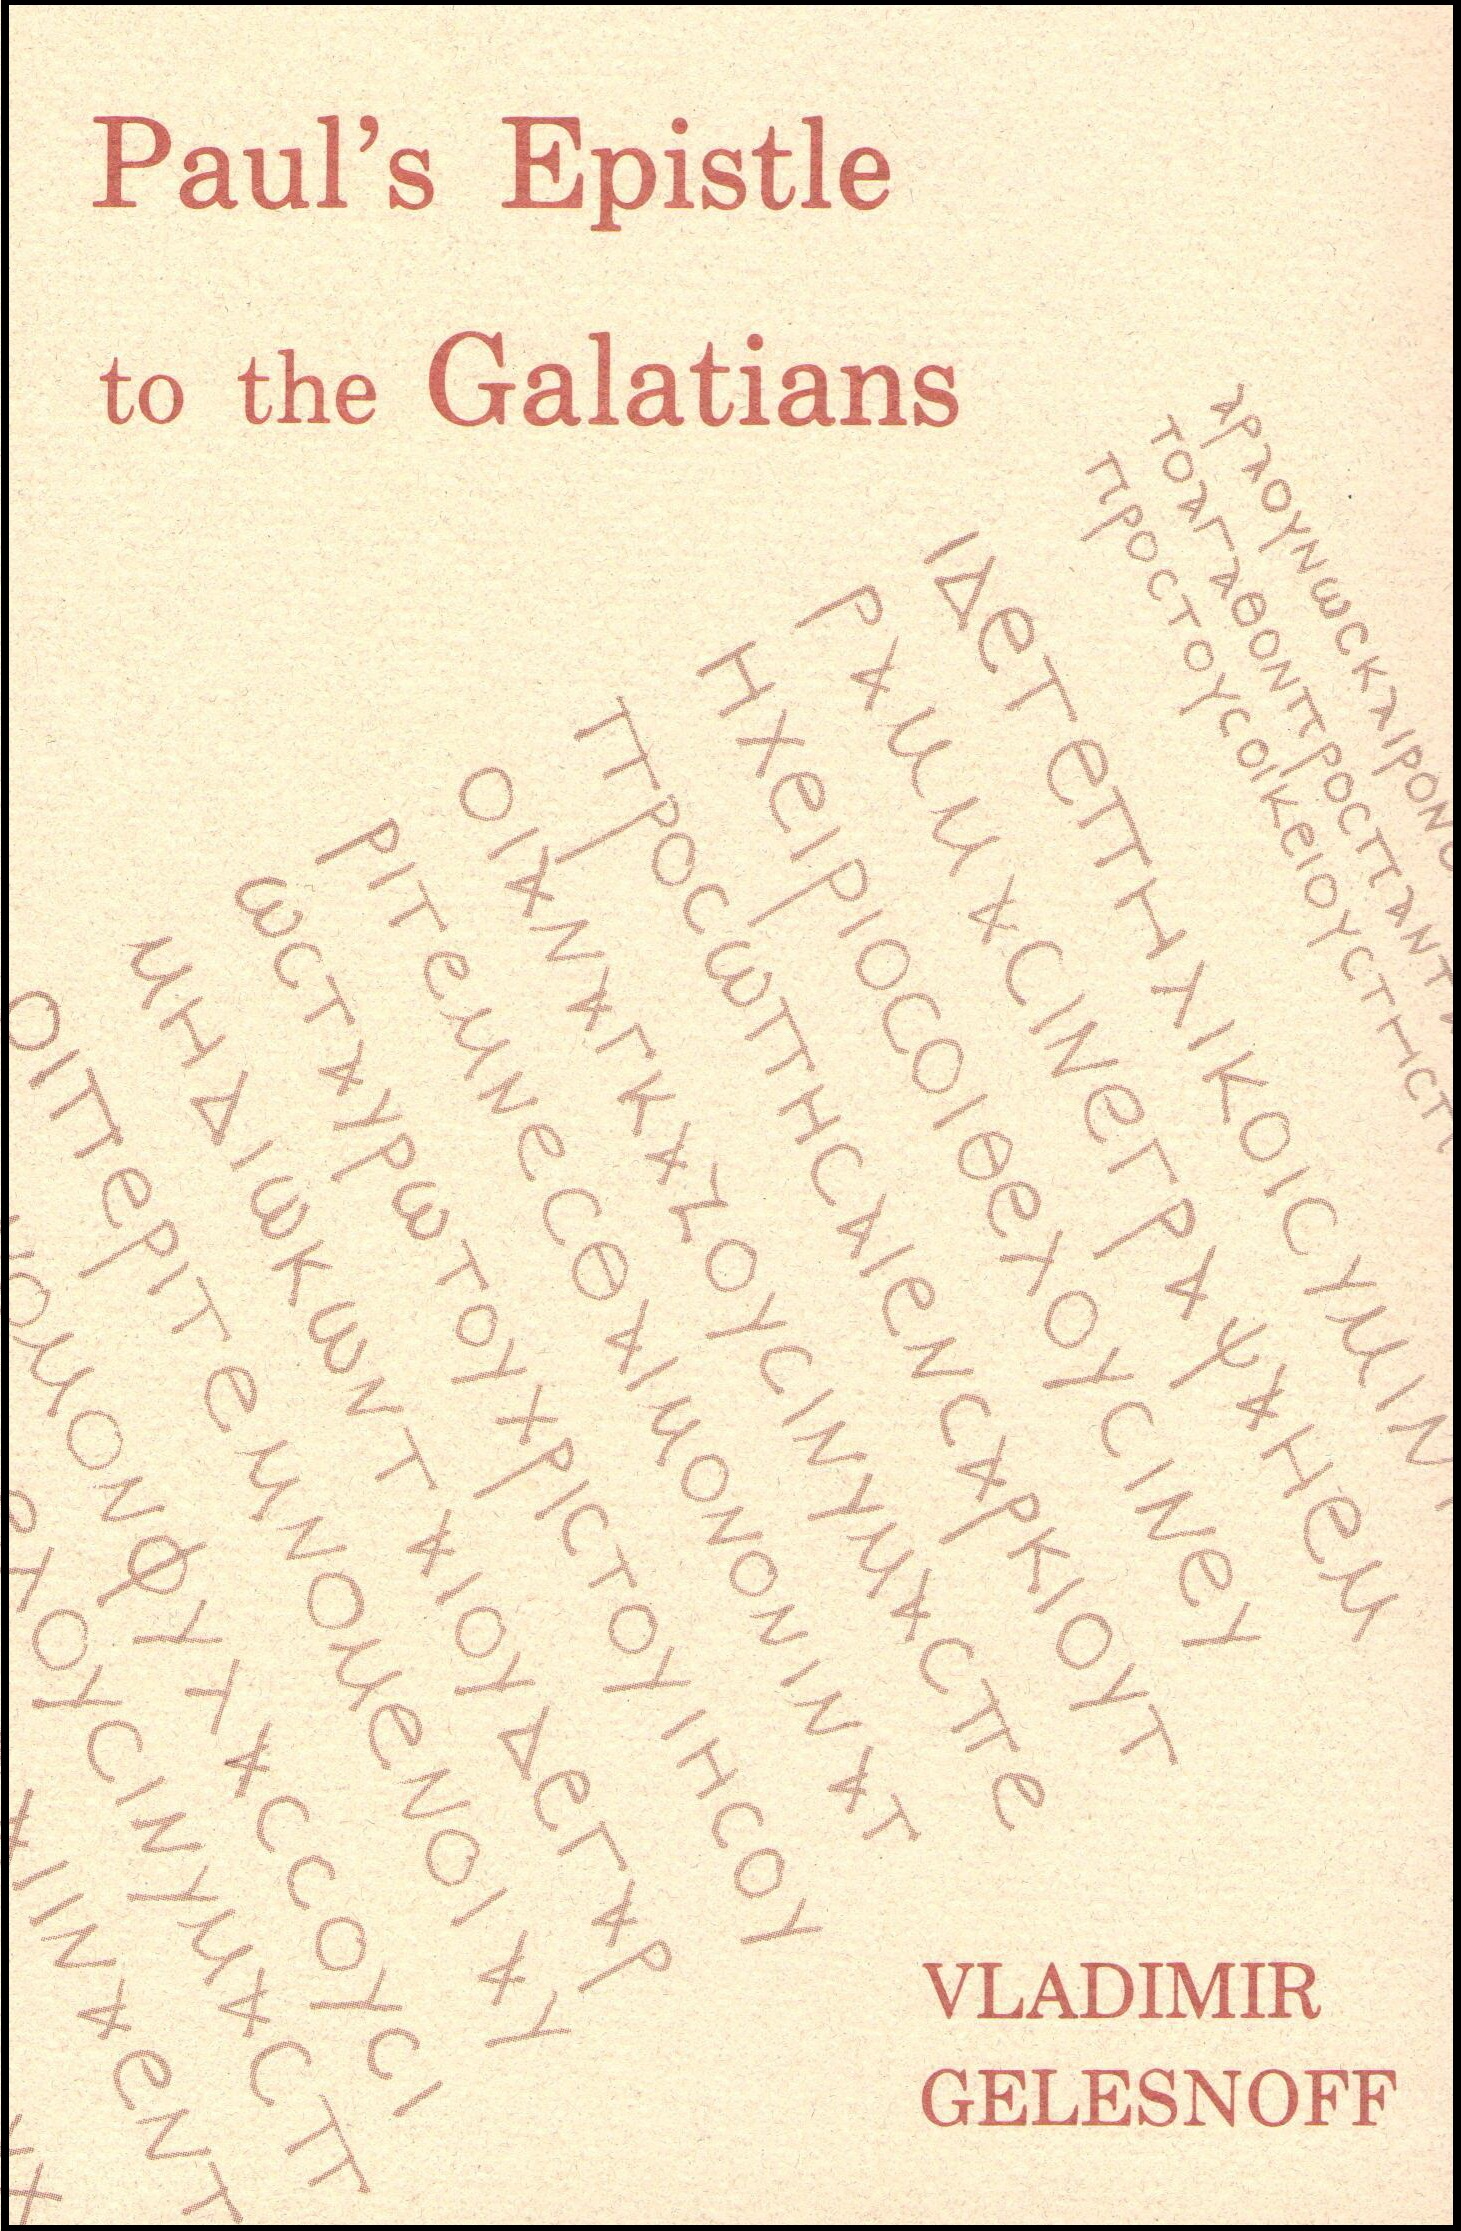 apostle paul s letter to galatians The galatians were on paul's first missionary journey and paul's letter to the galatians conveys both the love and frustration of a parent with recalcitrant children.